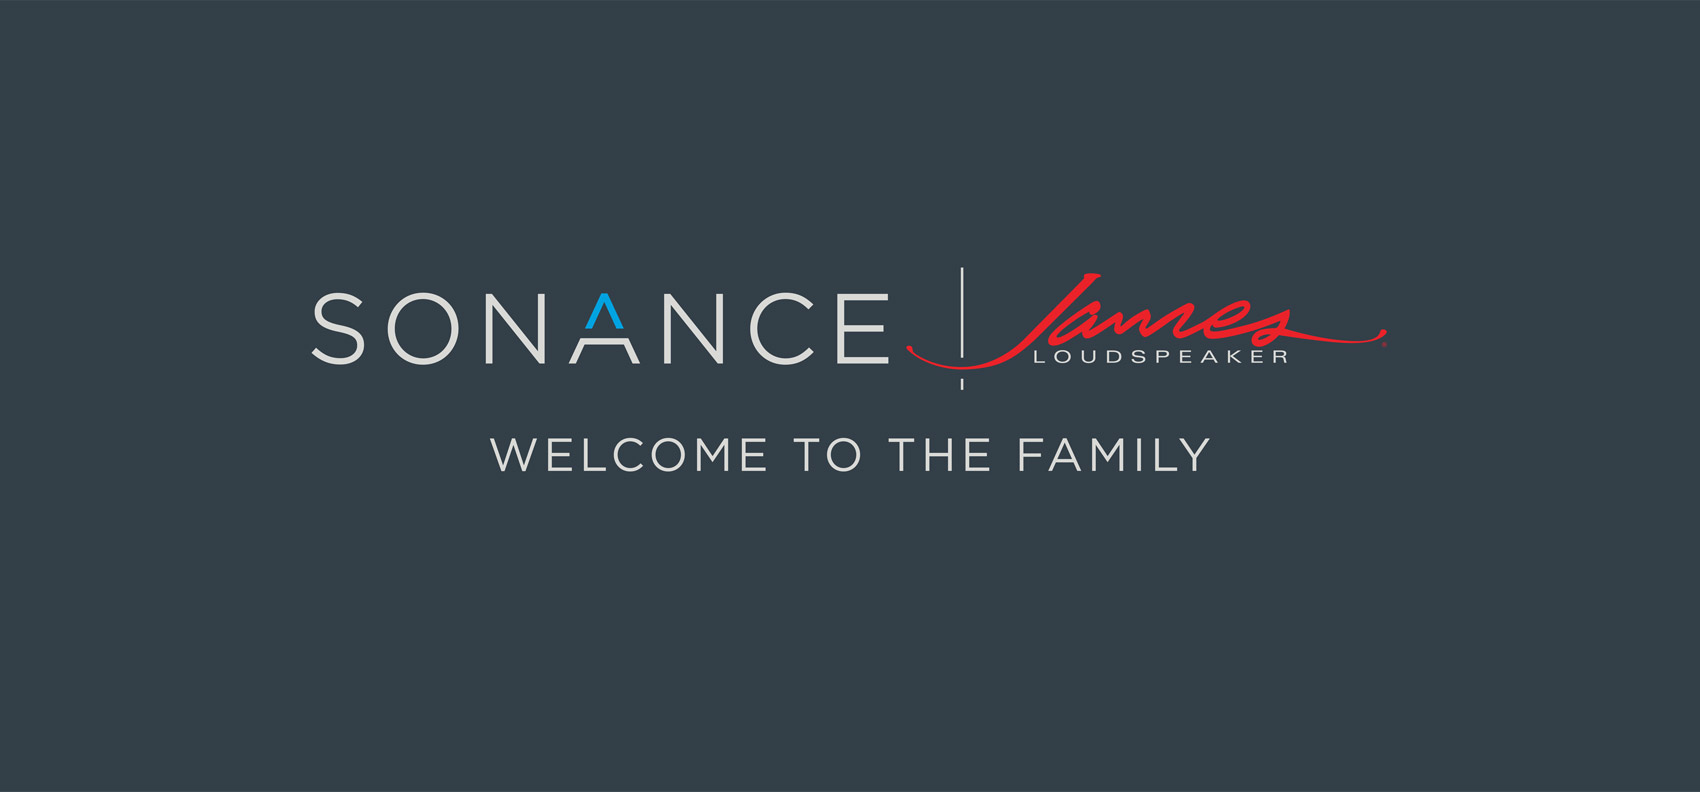 Sonance-Welcome-James-Loudspeaker